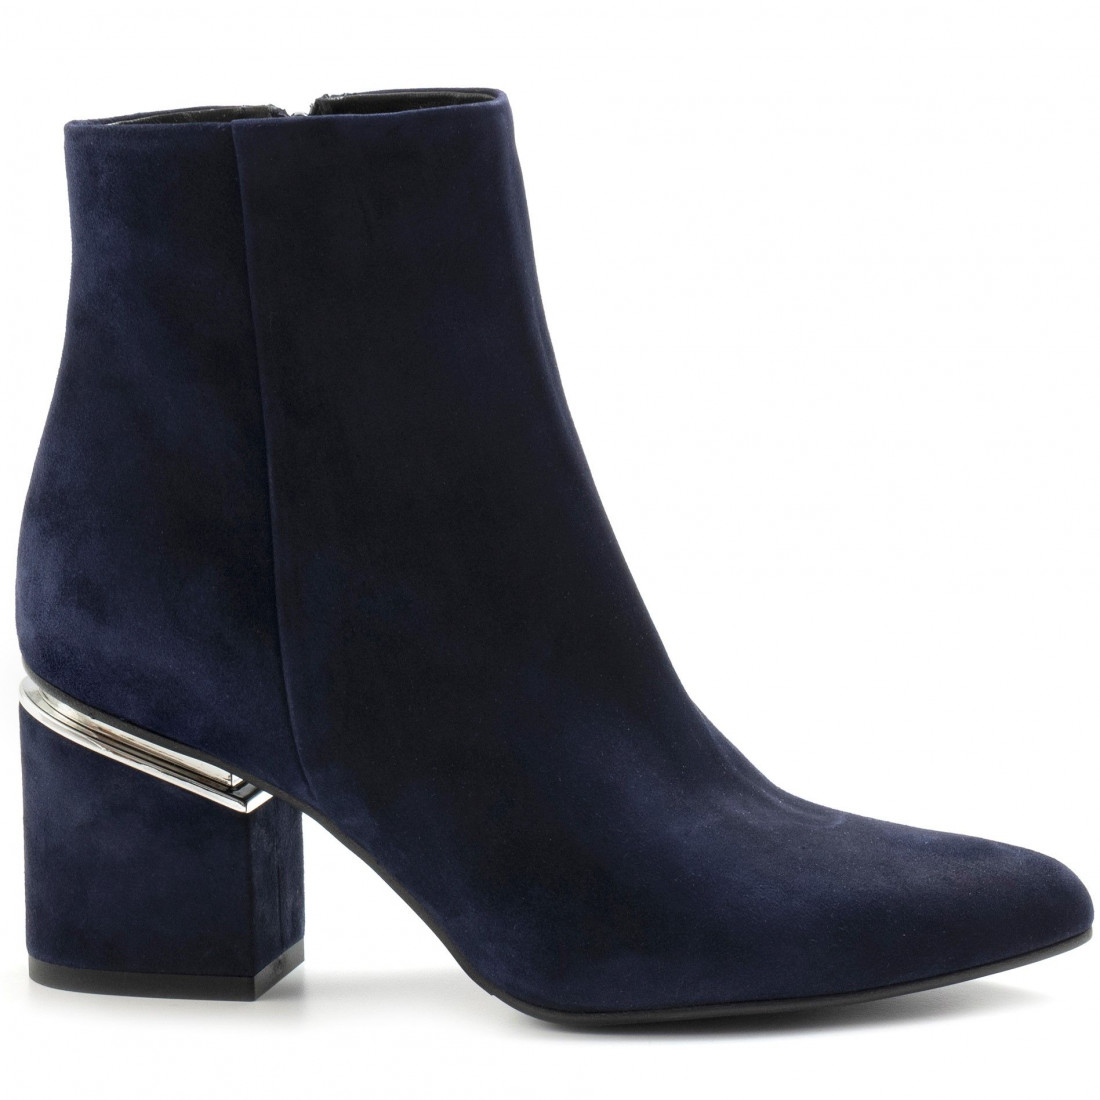 booties woman silvia rossini sr133camoscio blu 7978